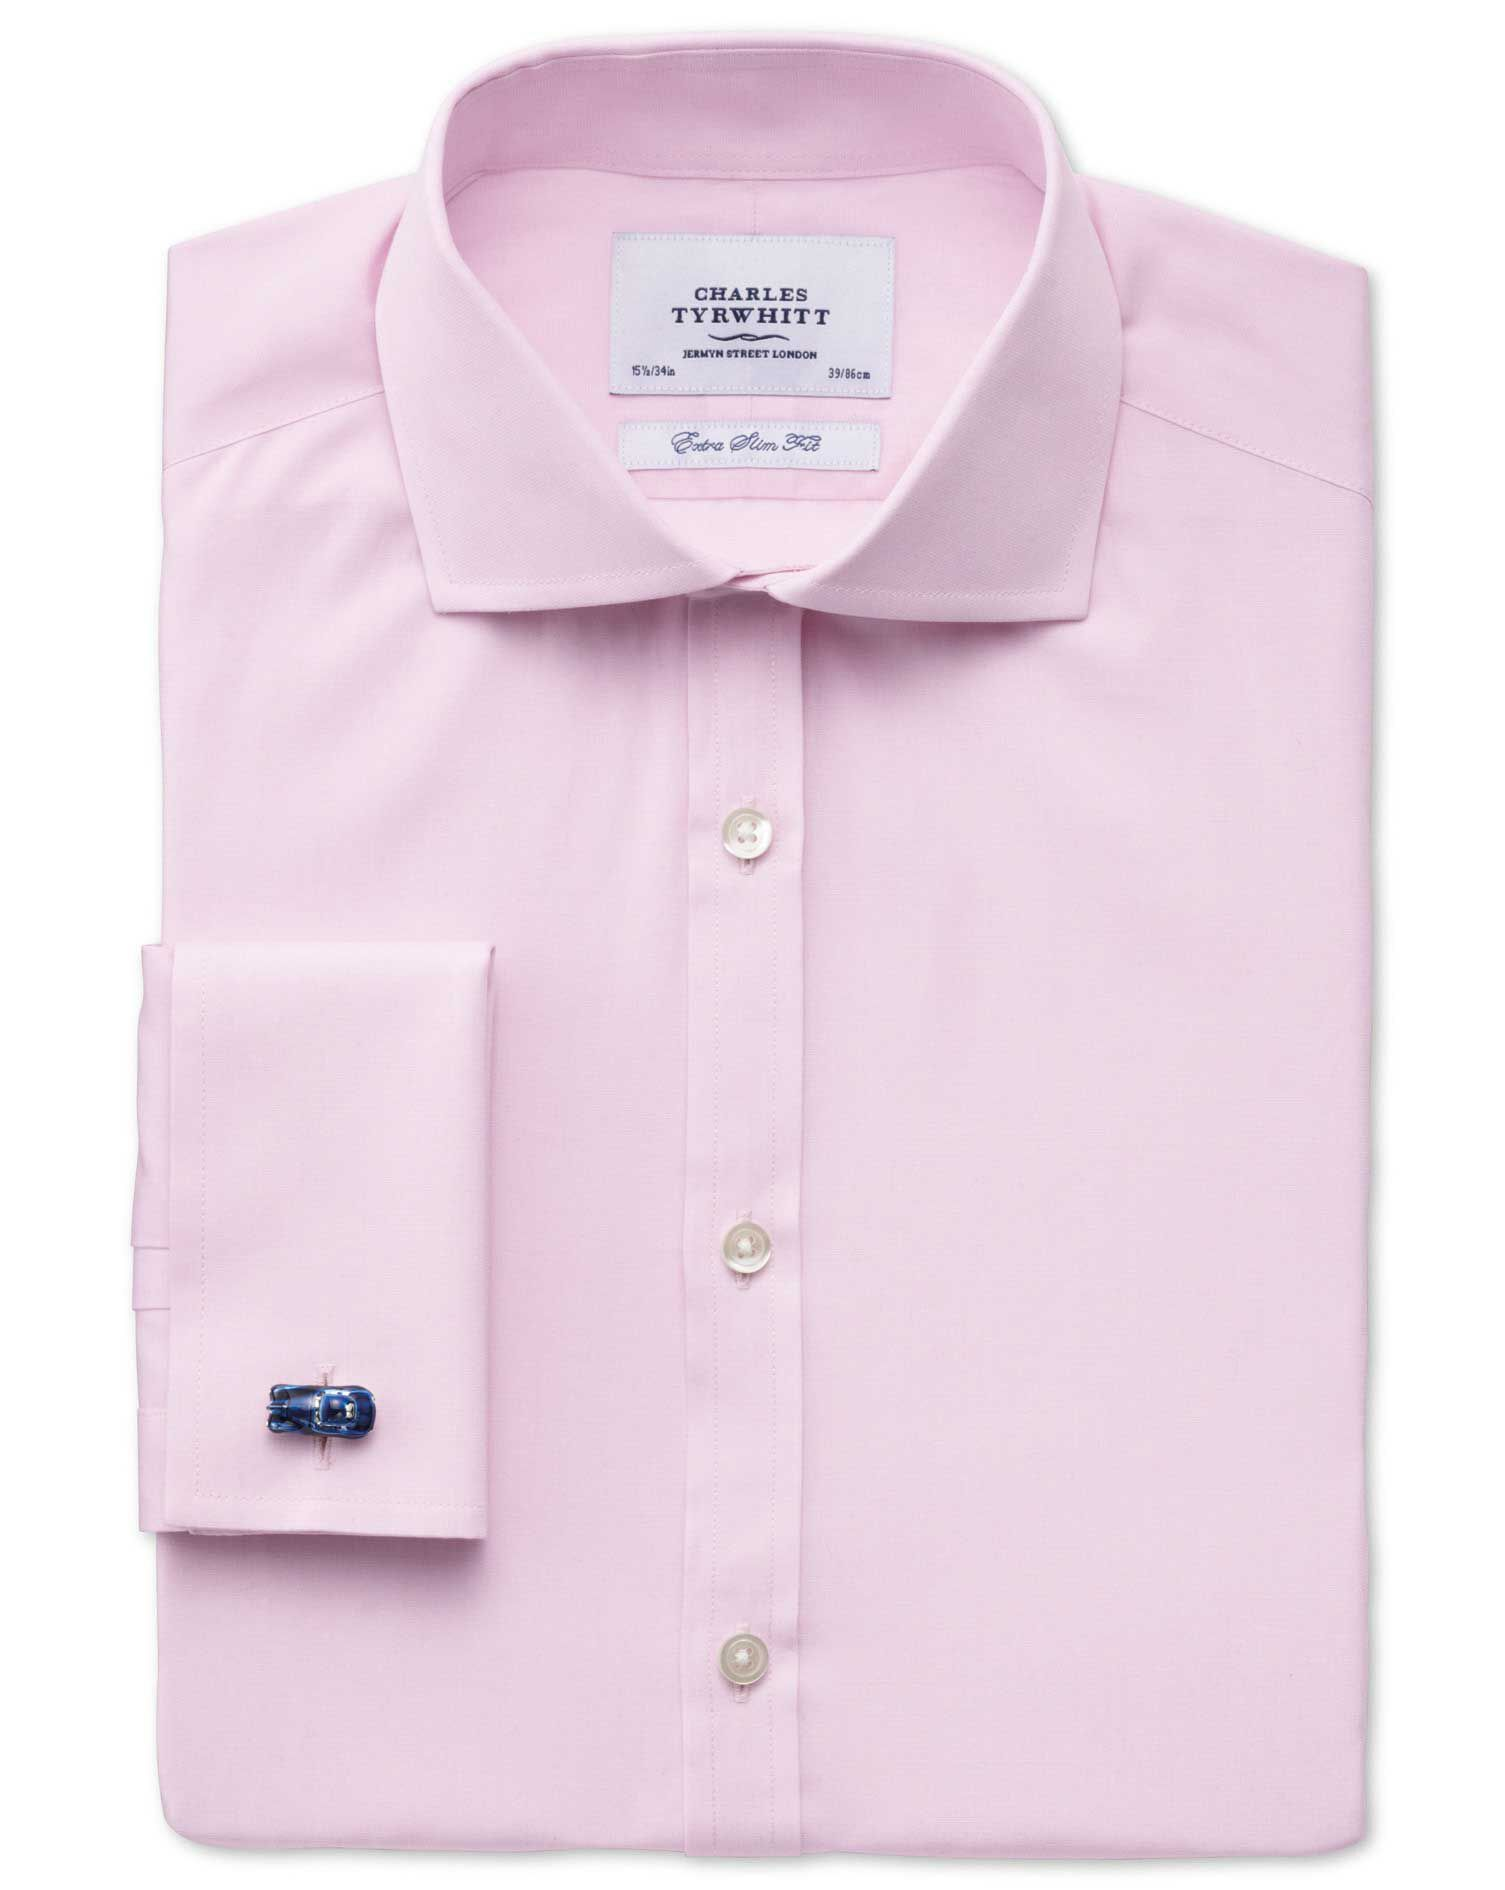 Extra Slim Fit Cutaway Collar End-On-End Pink Cotton Formal Shirt Single Cuff Size 15.5/34 by Charle